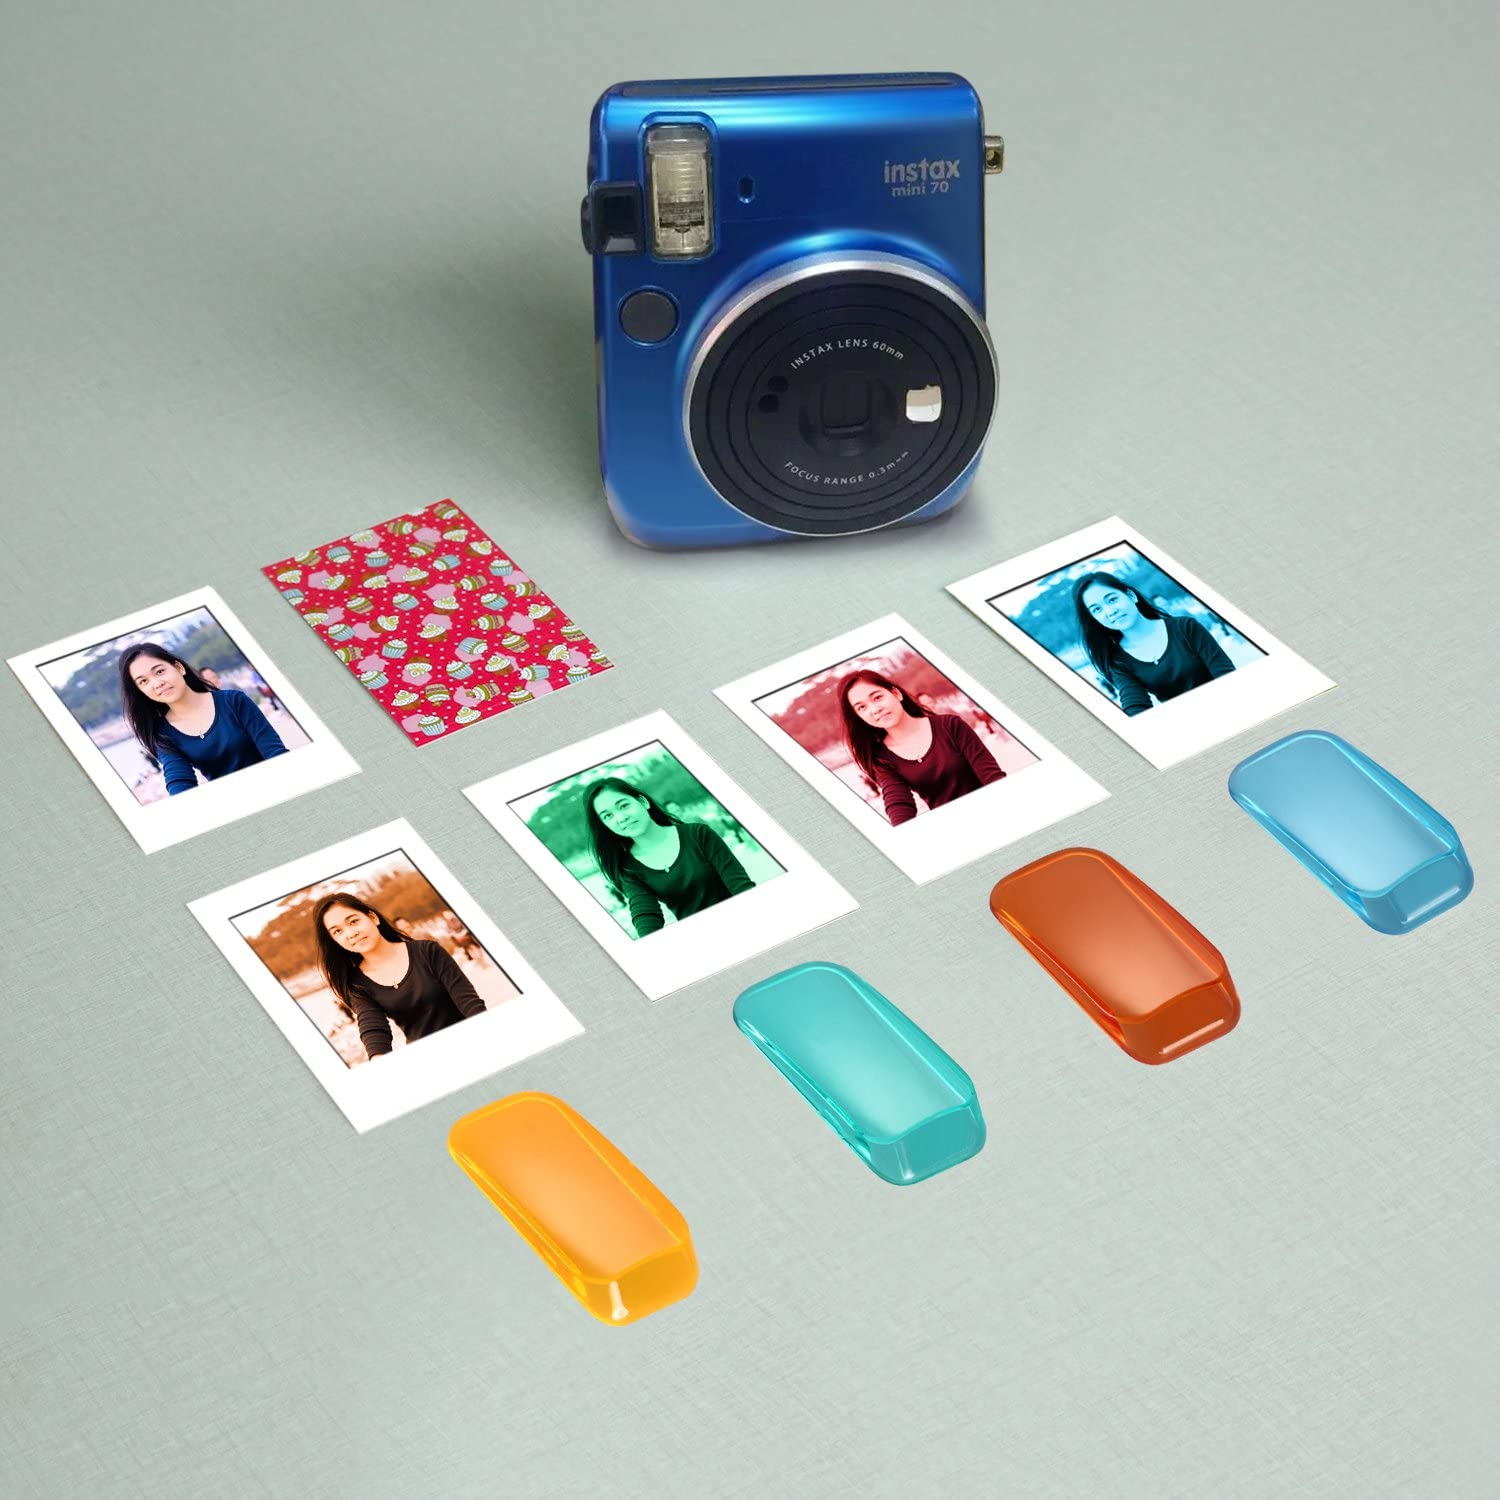 Photo Instant Films Stickers Neewer 56-in-1 Accessory Kit for Fujifilm Instax Mini 70 Color Filters Various Frames Blue Corner Stickers Book Album Includes: Camera Case with Adjustable Strap